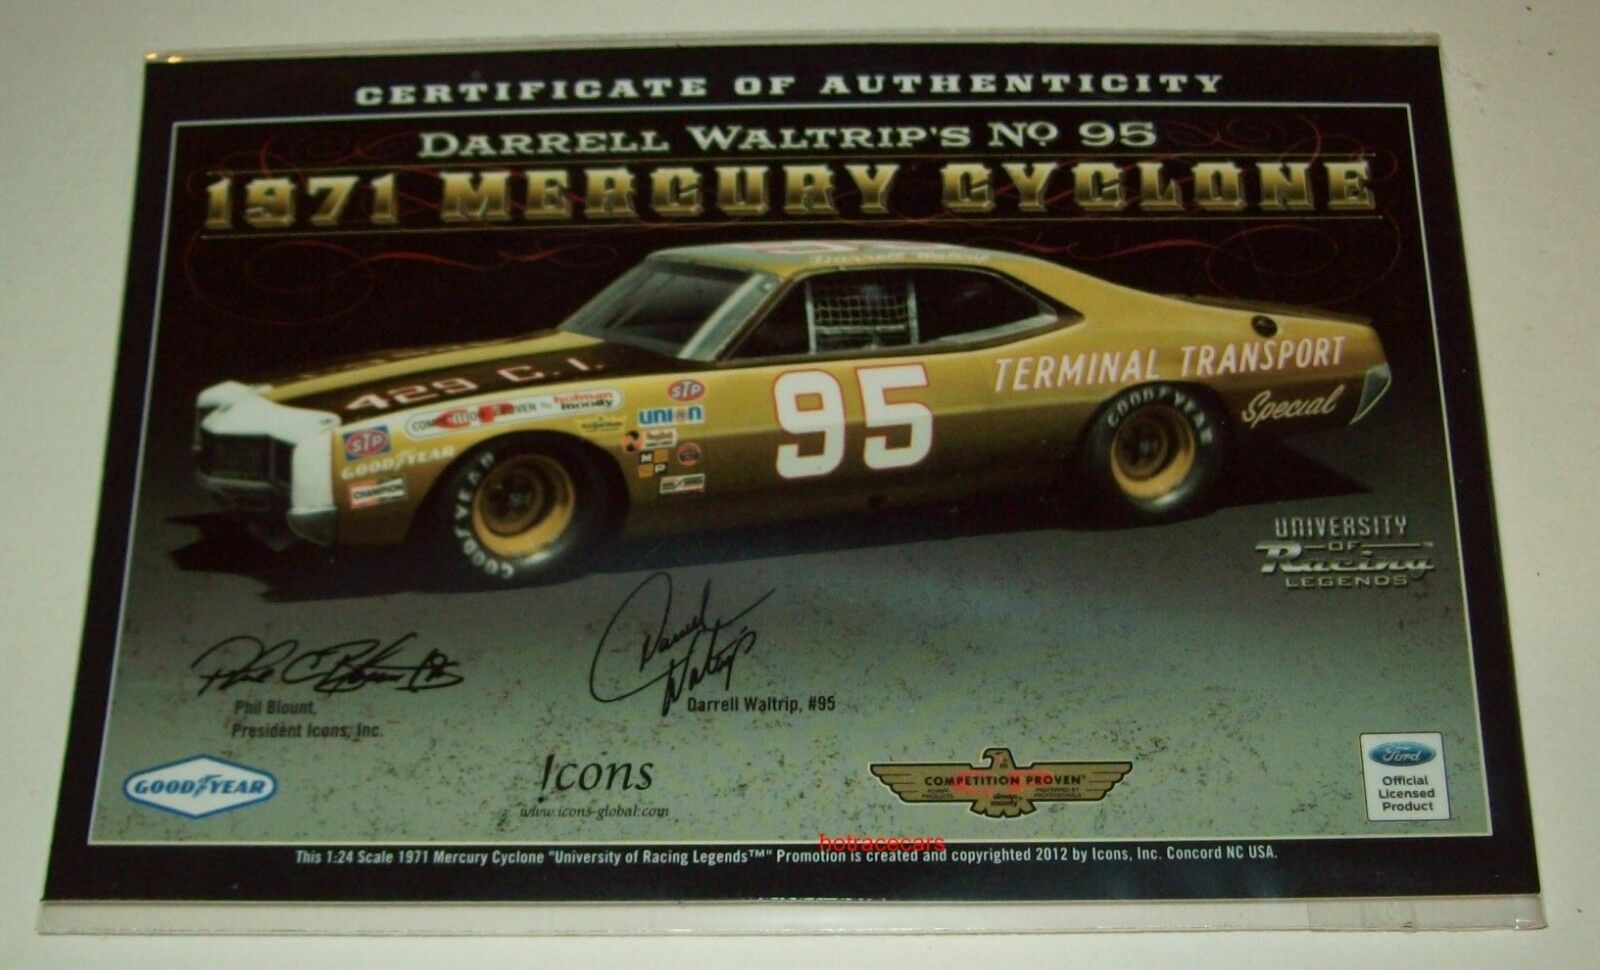 Darrell Waltrip 1971 1971 1971 Mercury Cyclone Signed Autograph 1 24 NASCAR Legends 3310bd